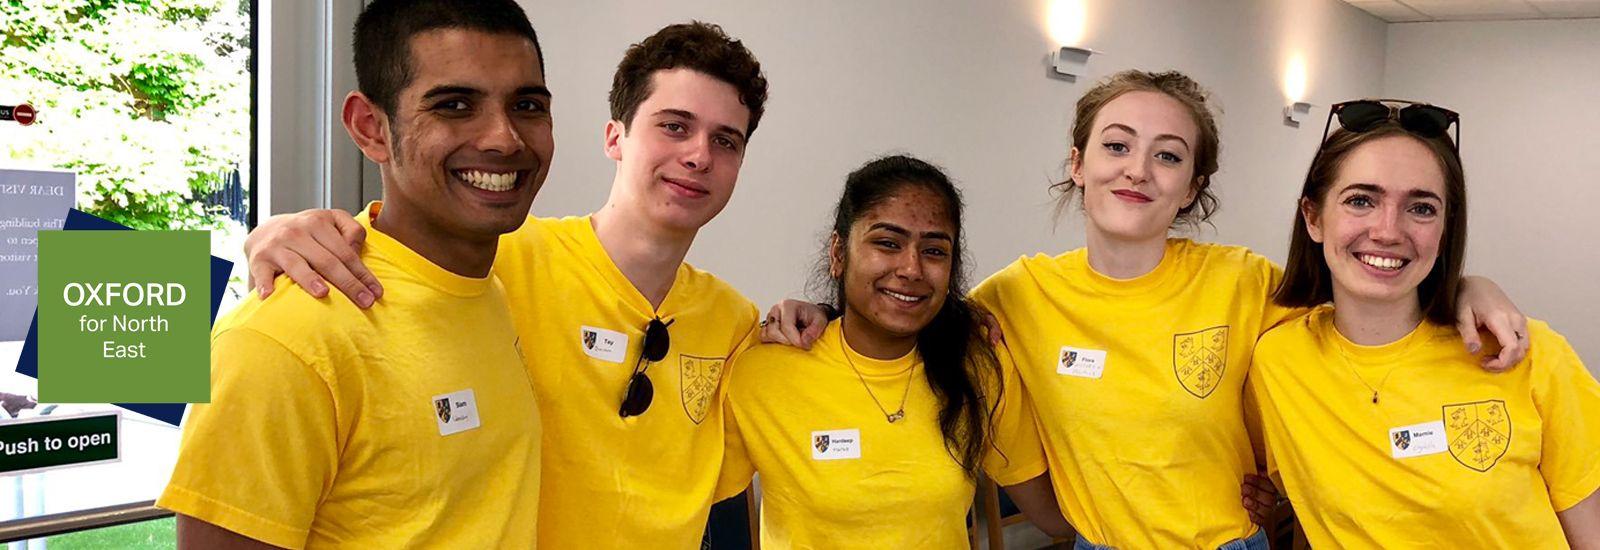 students wearing yellow t-shirt